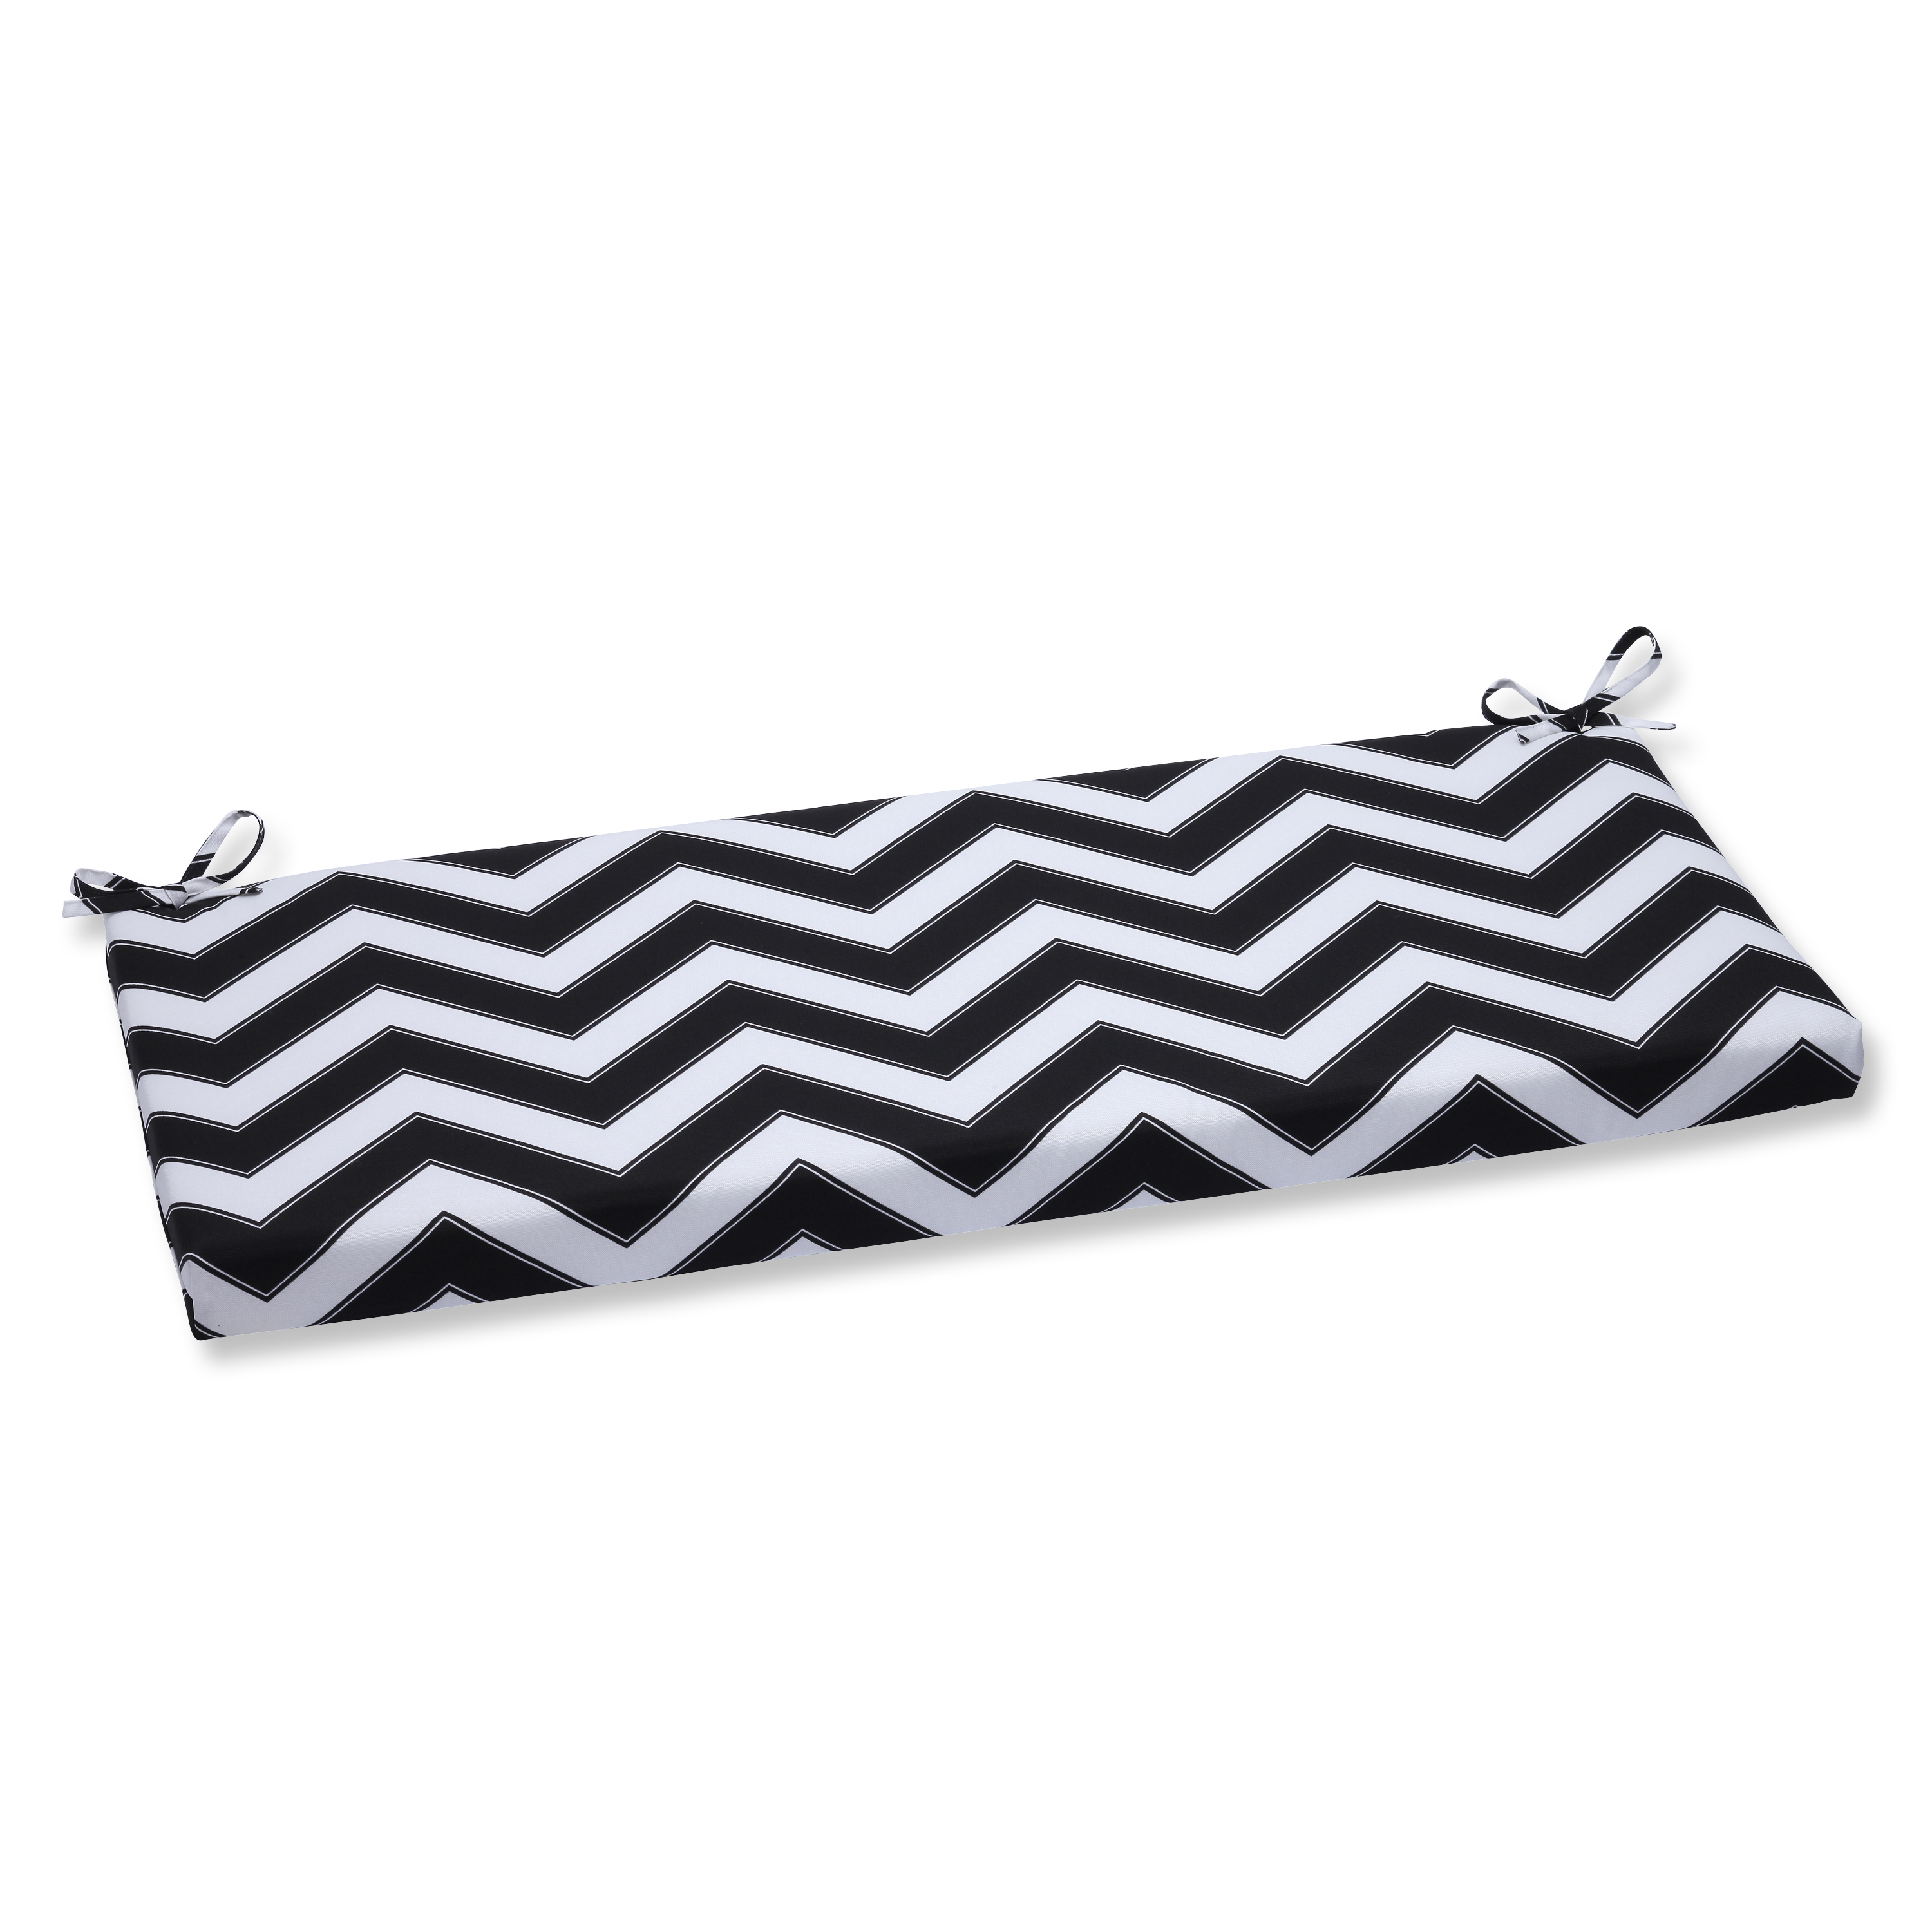 Pillow Perfect Outdoor/ Indoor Chevron Black/White Bench Cushion